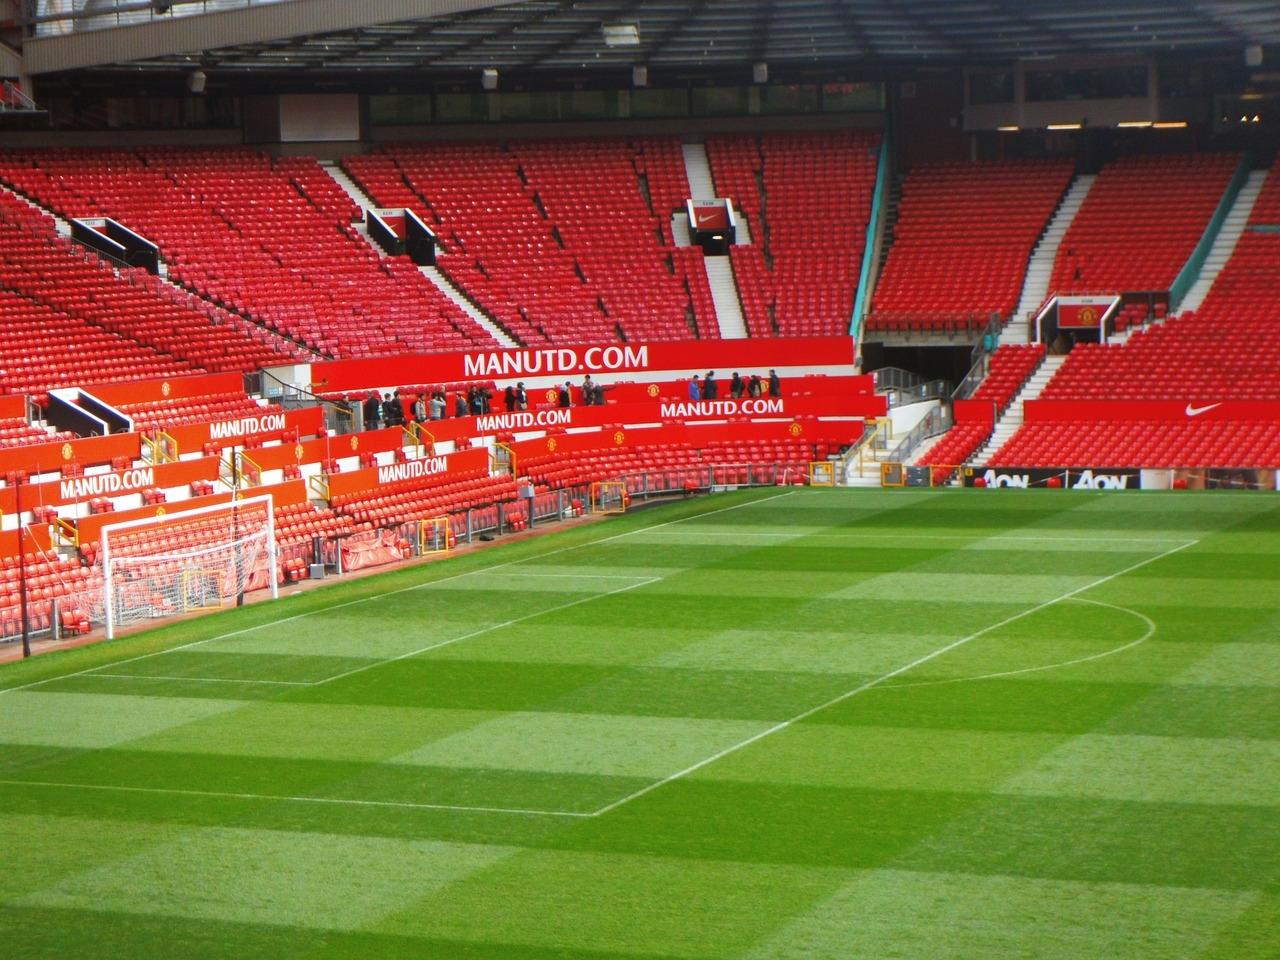 Old Trafford #stadium #footbal #Manchester Cathedral, #travel #Europe #UK #England